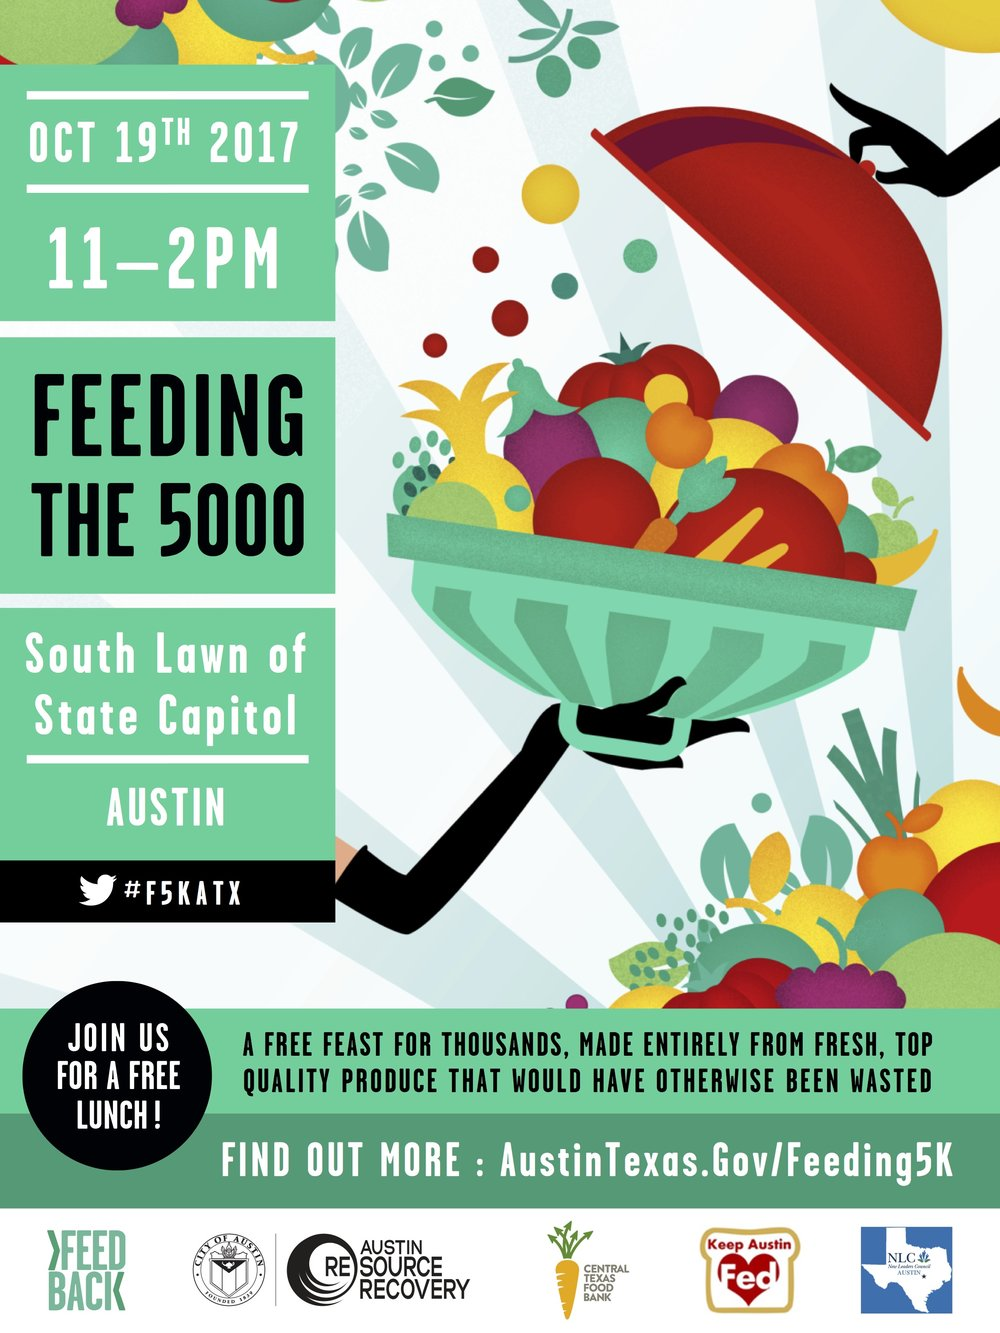 Feed 5000 people. - Austin will take food that would have otherwise gone to the landfill and serve a delicious, communal feast for 5000 people. Fresh Chefs apprentices will work with the team at Bonneville to prepare the feast!